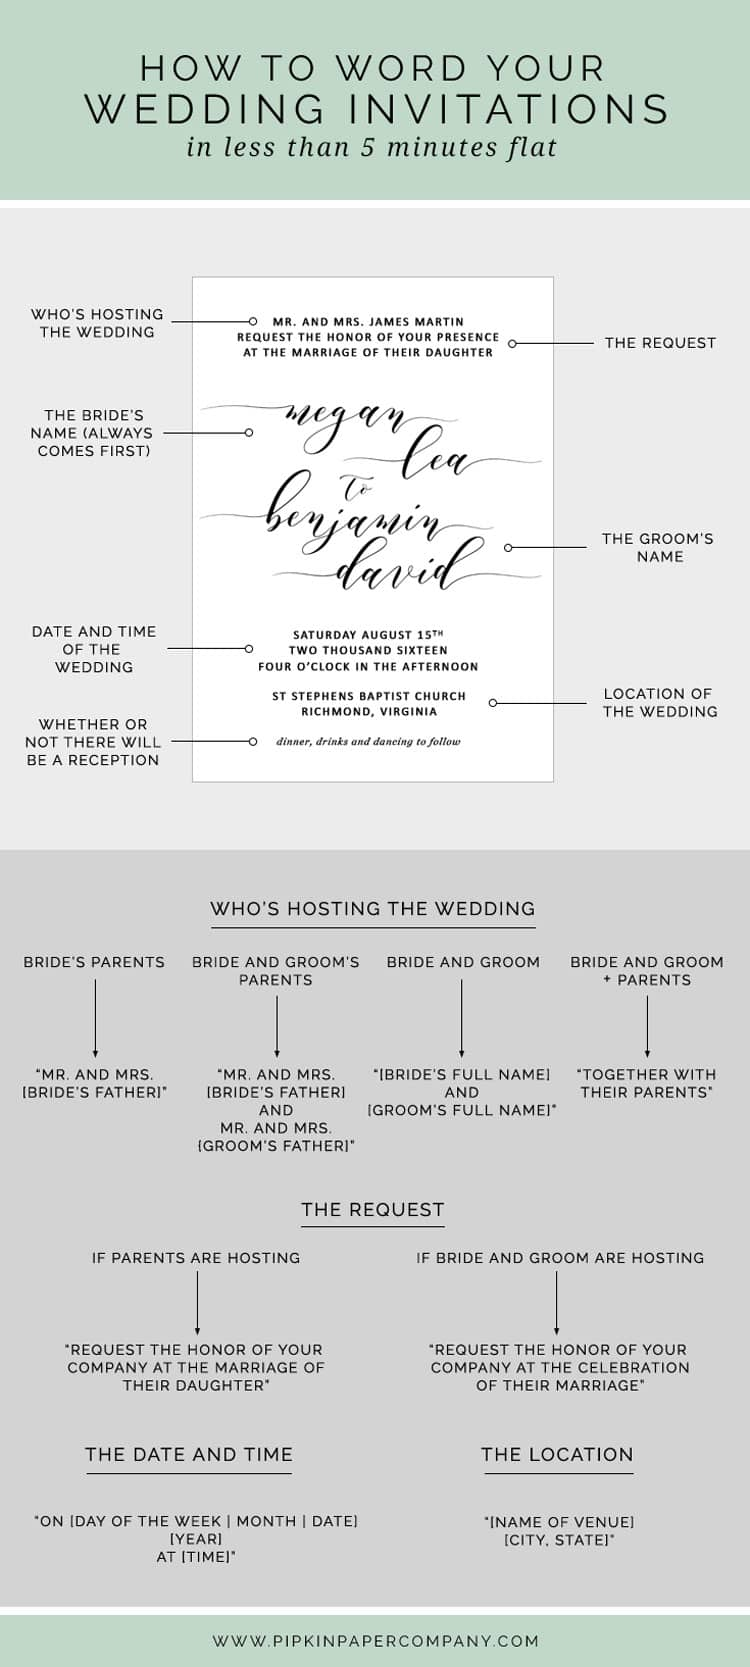 HOW TO WRITE YOUR WEDDING INVITATION MESSAGE | Pipkin Paper Company